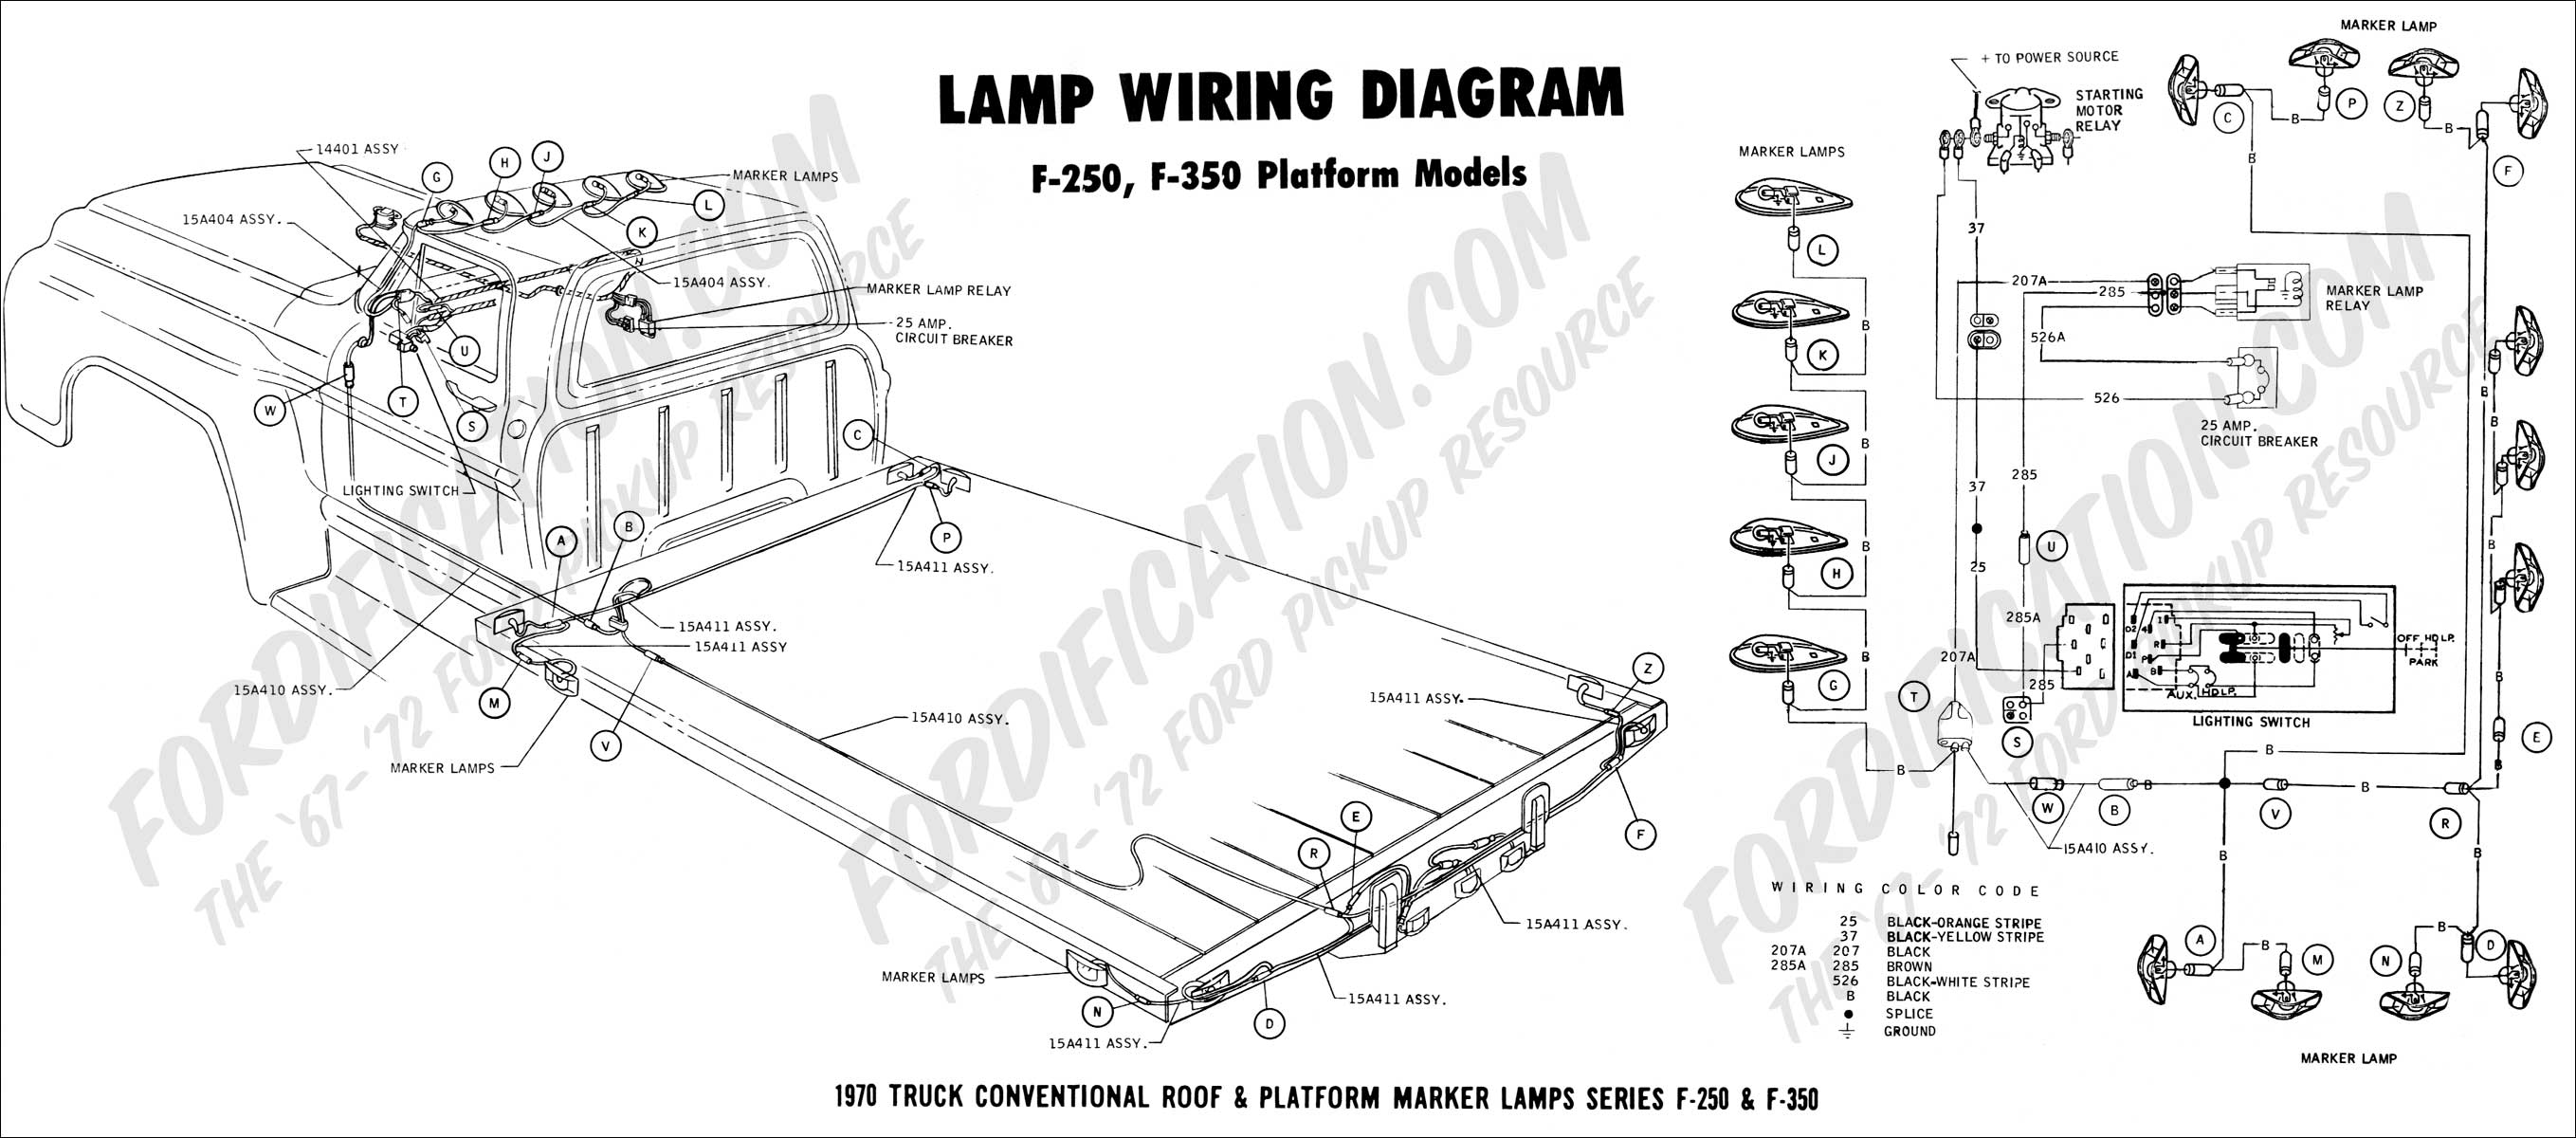 Stop Lamp Wiring 1995 Ford Bronco